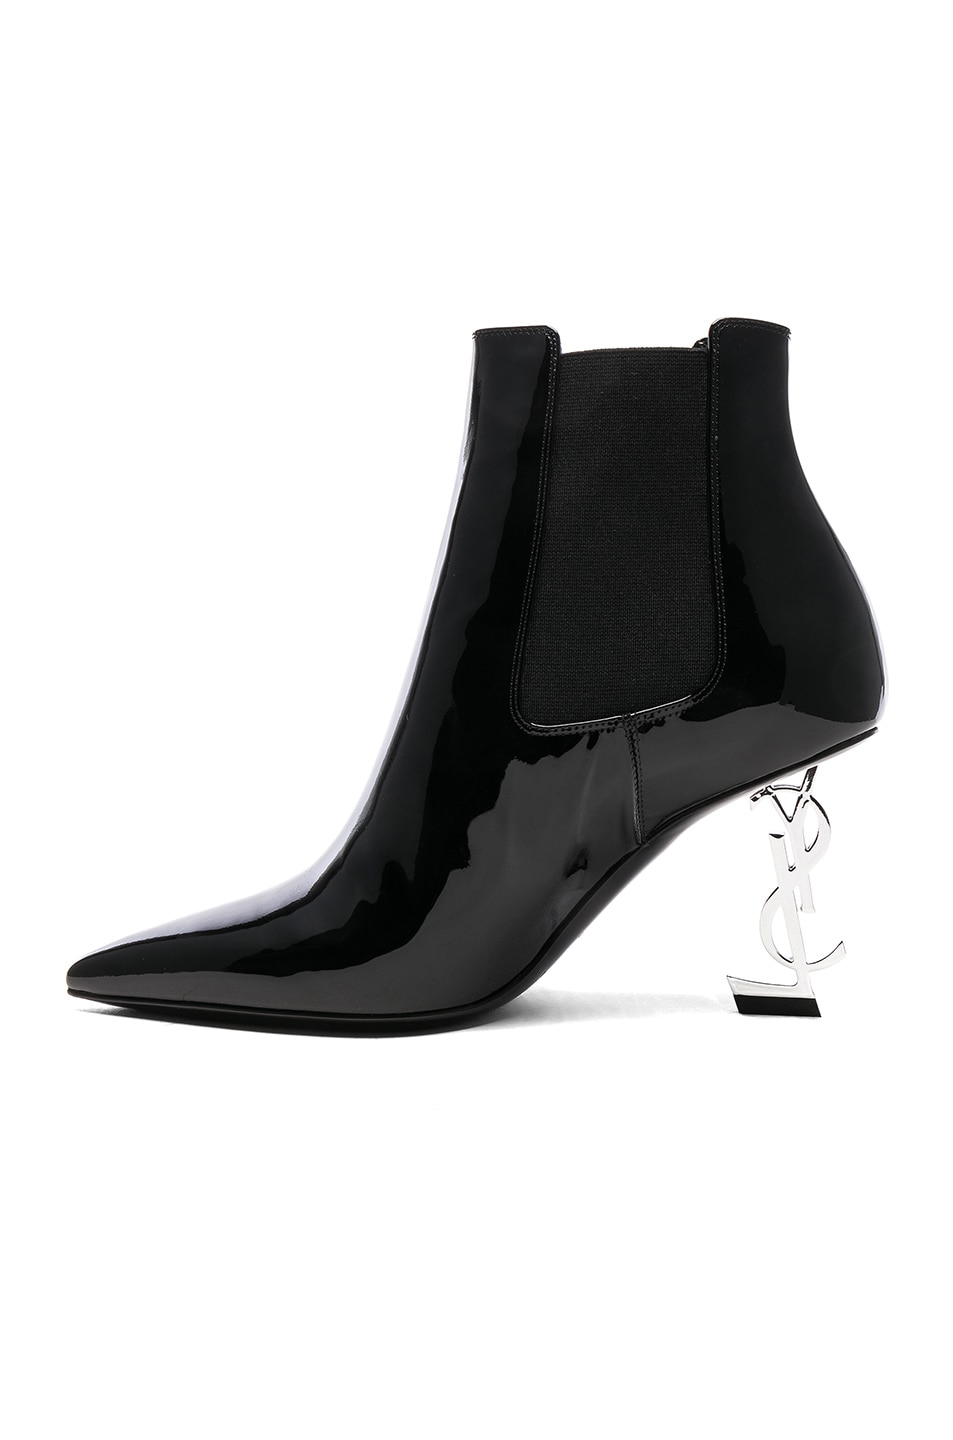 Image 5 of Saint Laurent Patent Opium Monogramme Heeled Boots in Black & Silver